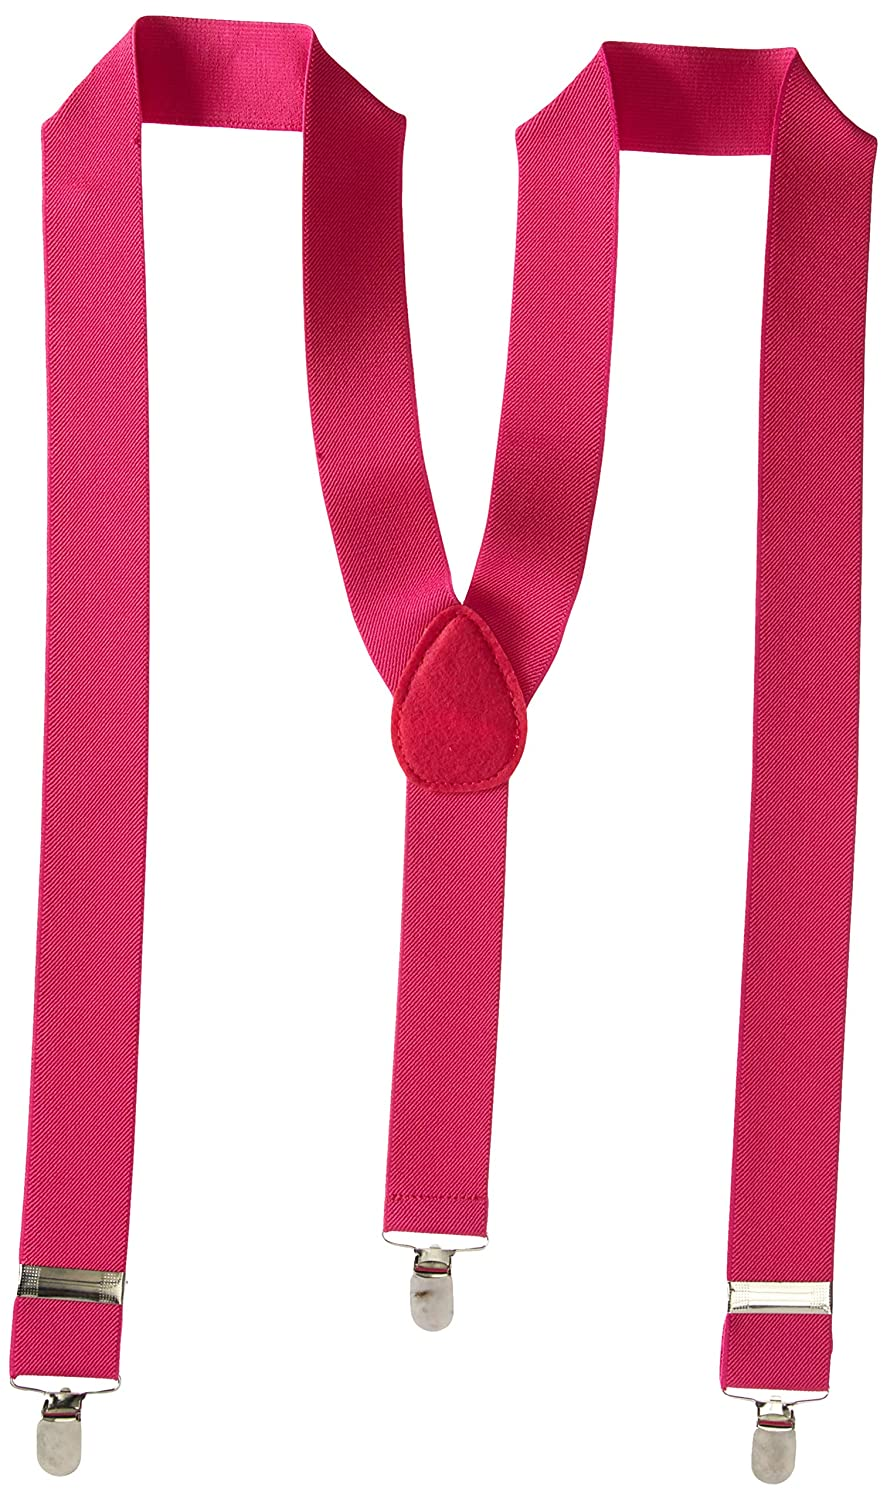 397282.103 Party Accessory Amscan Pink Suspenders 12 Ct TradeMart Inc